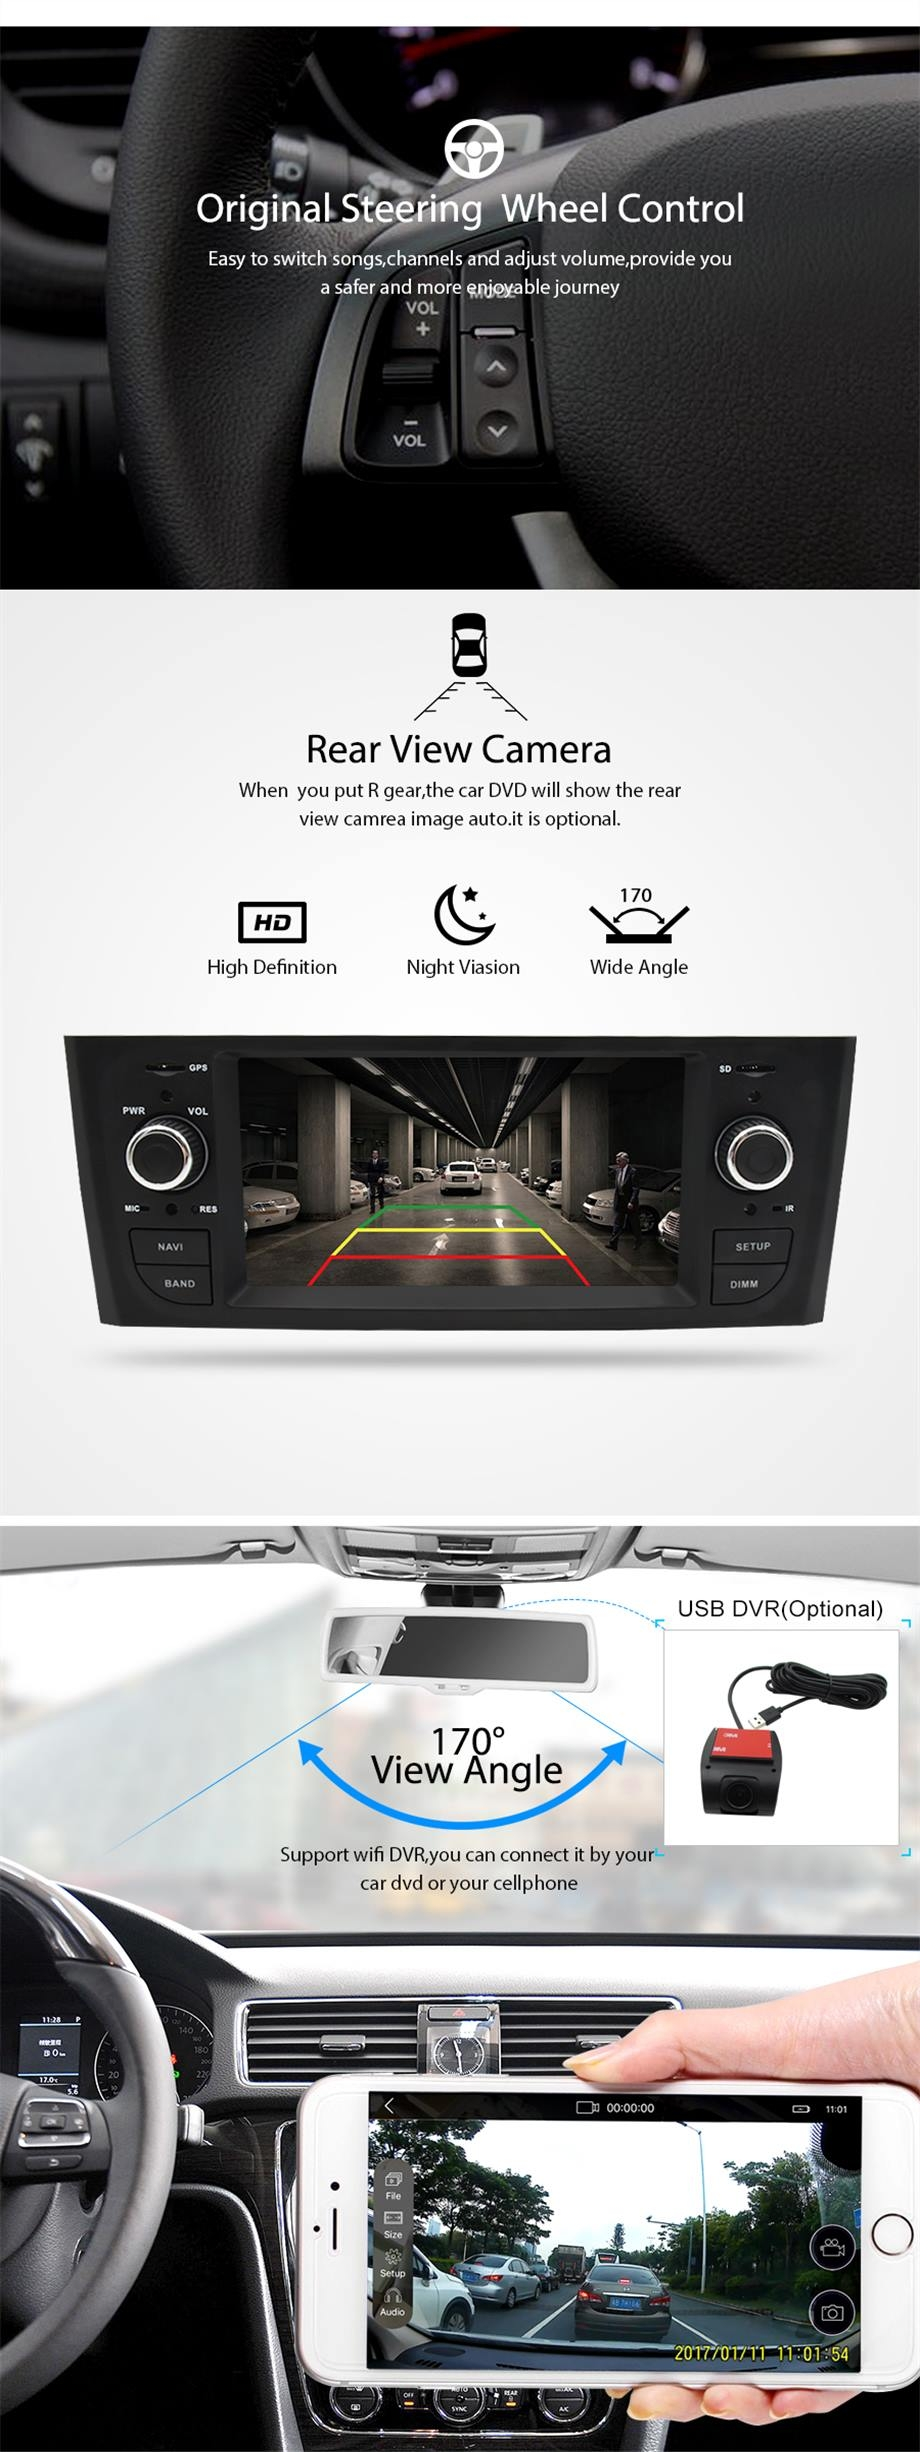 renault megane 3 android 8 1 autoradio lettore dvd con. Black Bedroom Furniture Sets. Home Design Ideas